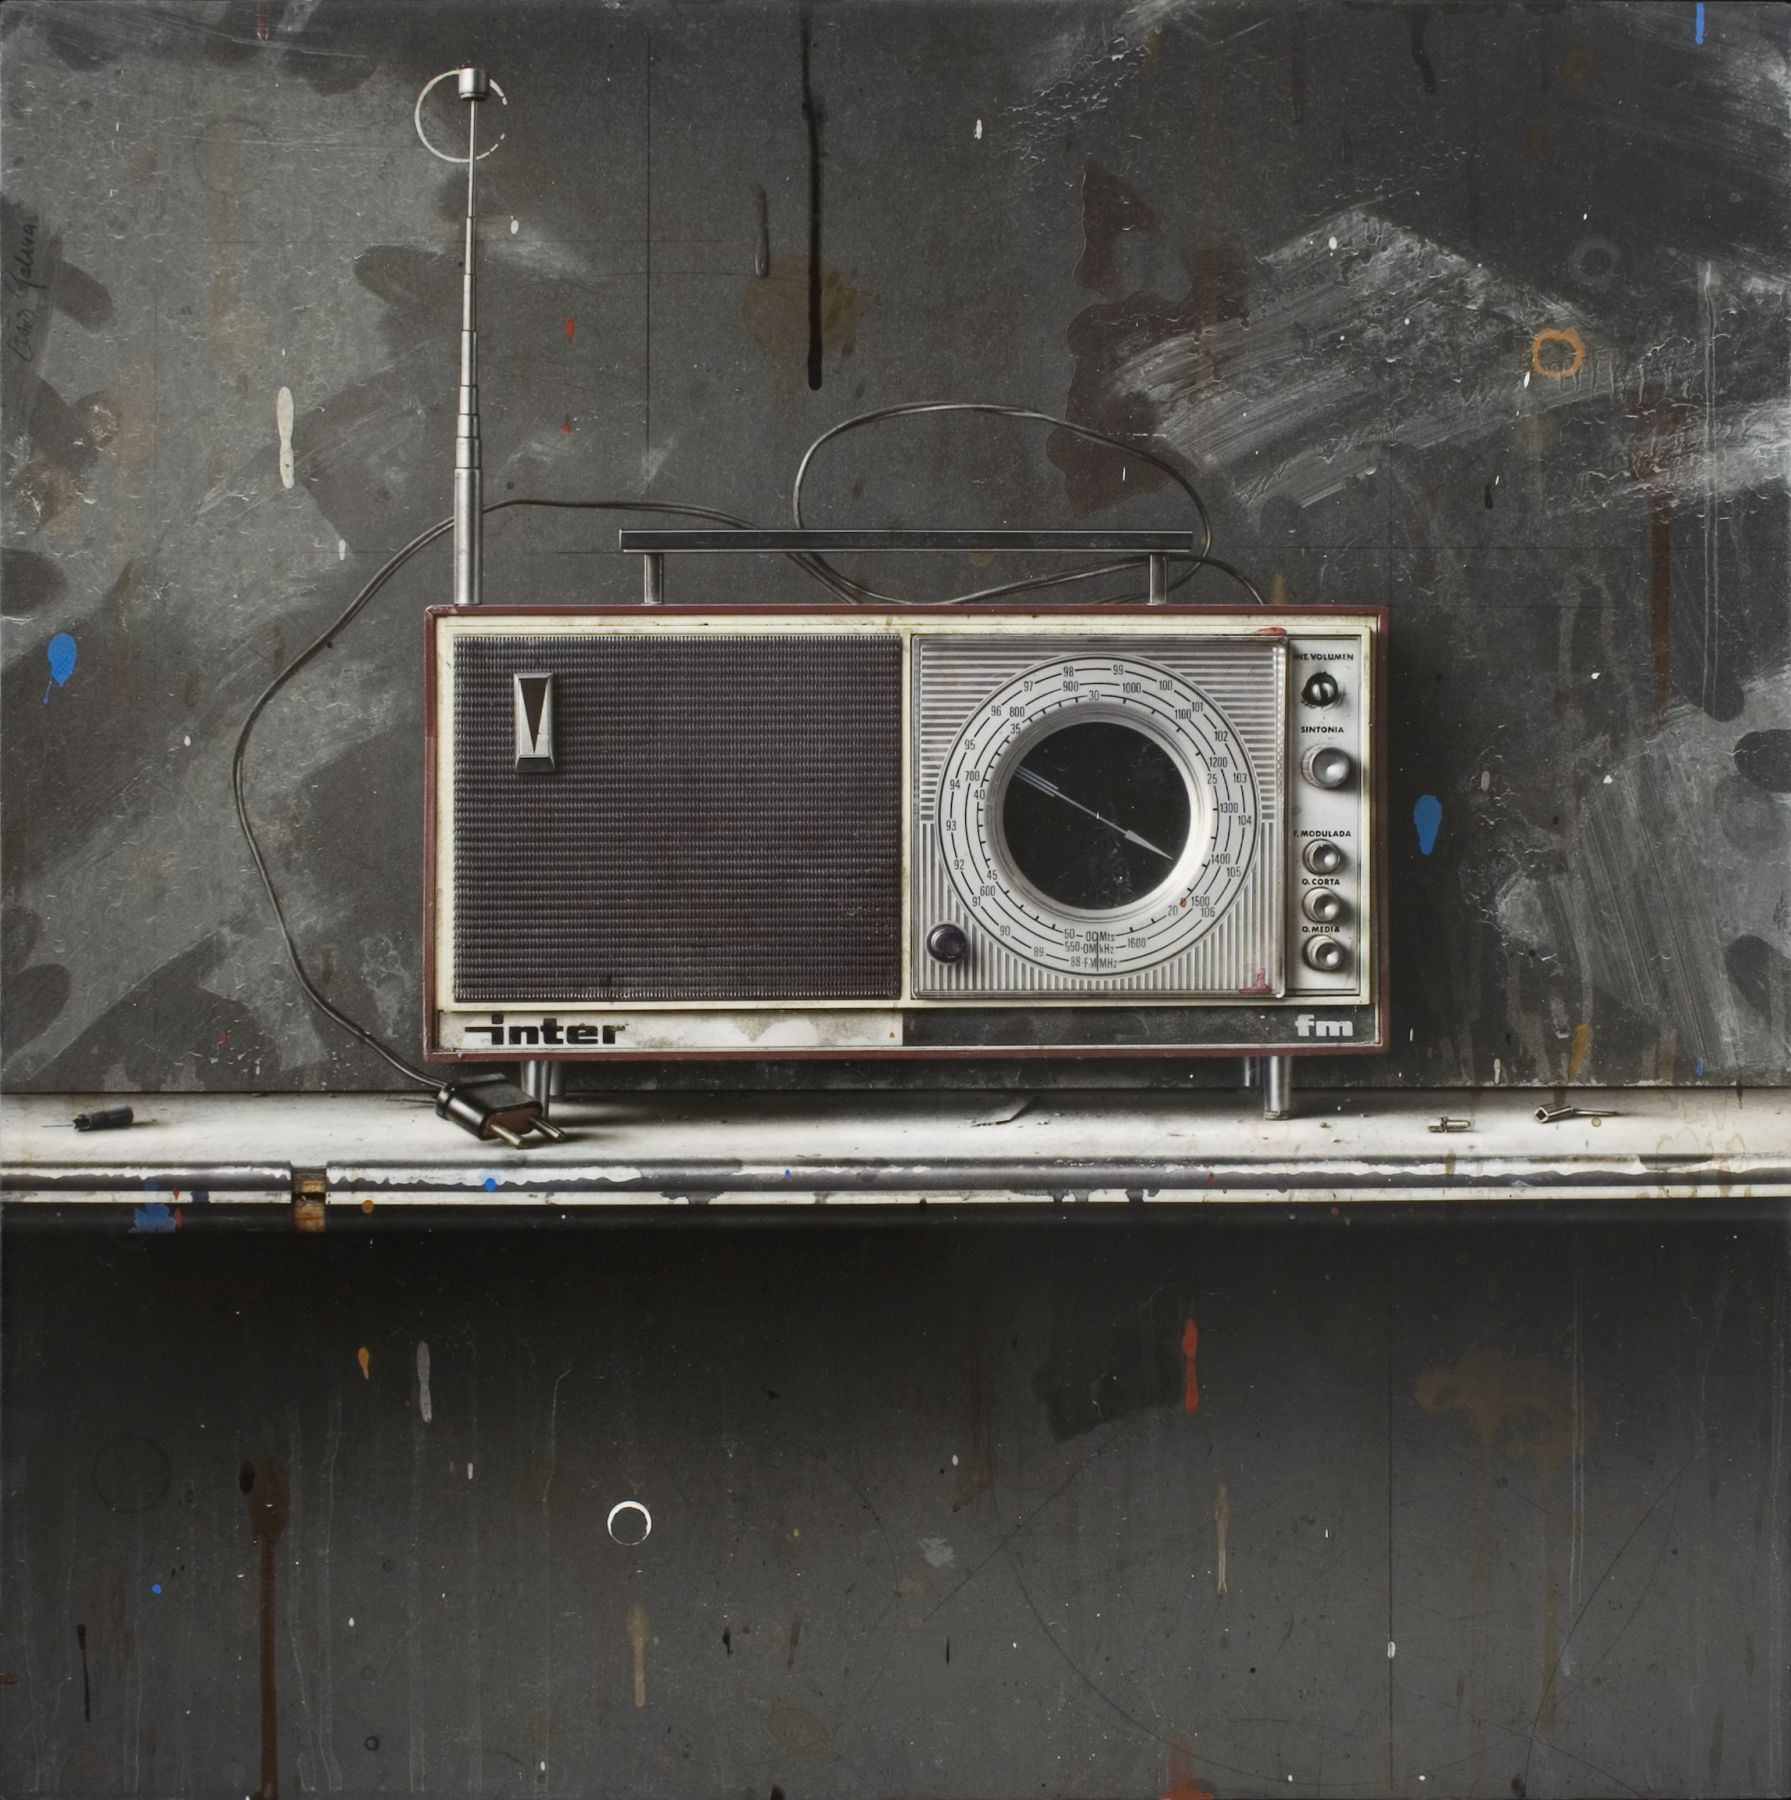 cesar galicia, Bodegón con Radio Inter (Still Life with Radio Inter), 2014, mixed media on plaster and wood, 22 5/8 x 22 3/4 inches